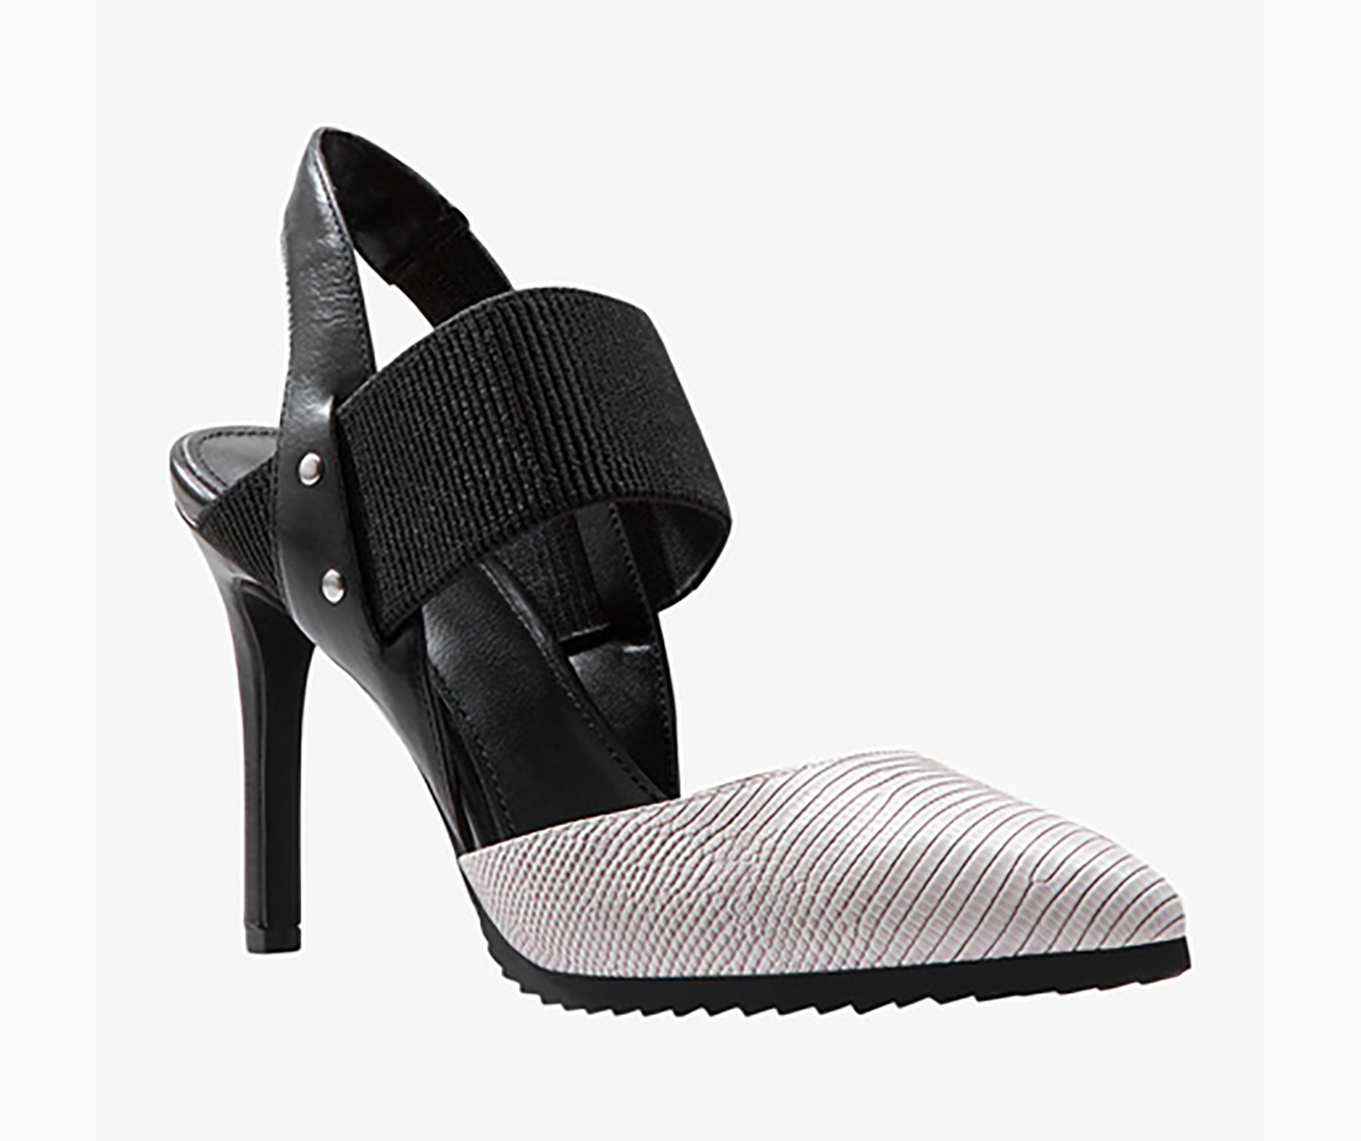 Next-Cleated-Sole-Slingback-Points-0000-0882453-1-pdp_slider_l